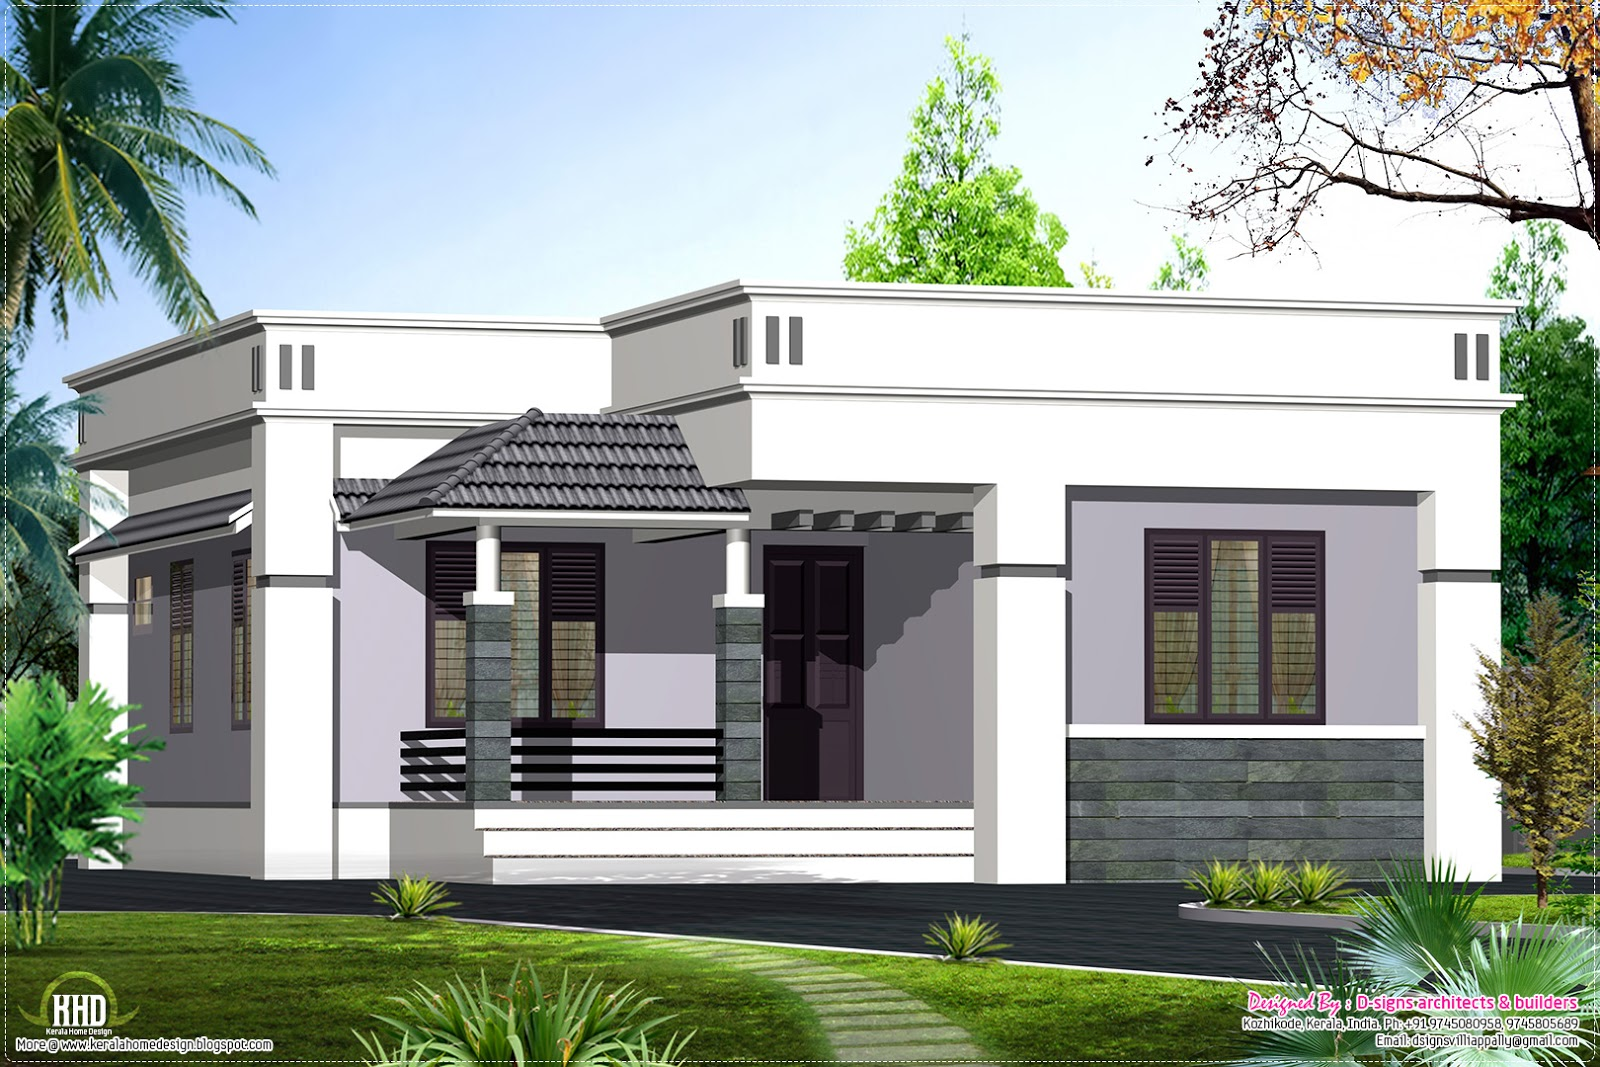 One floor house design 1100 house design plans One floor house plans